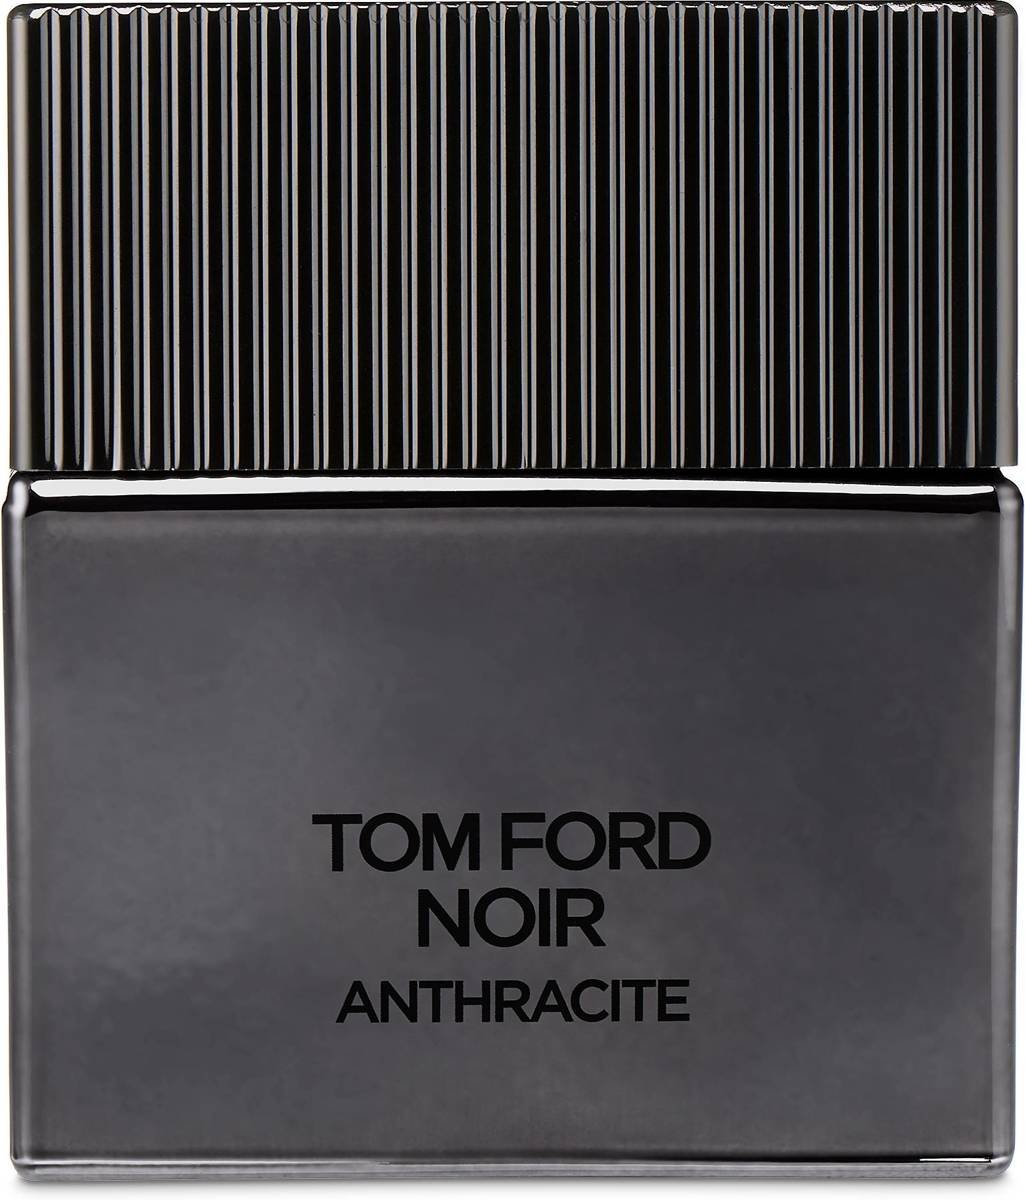 TOM FORD NOIR ANTHRACITE(M)EDP 50